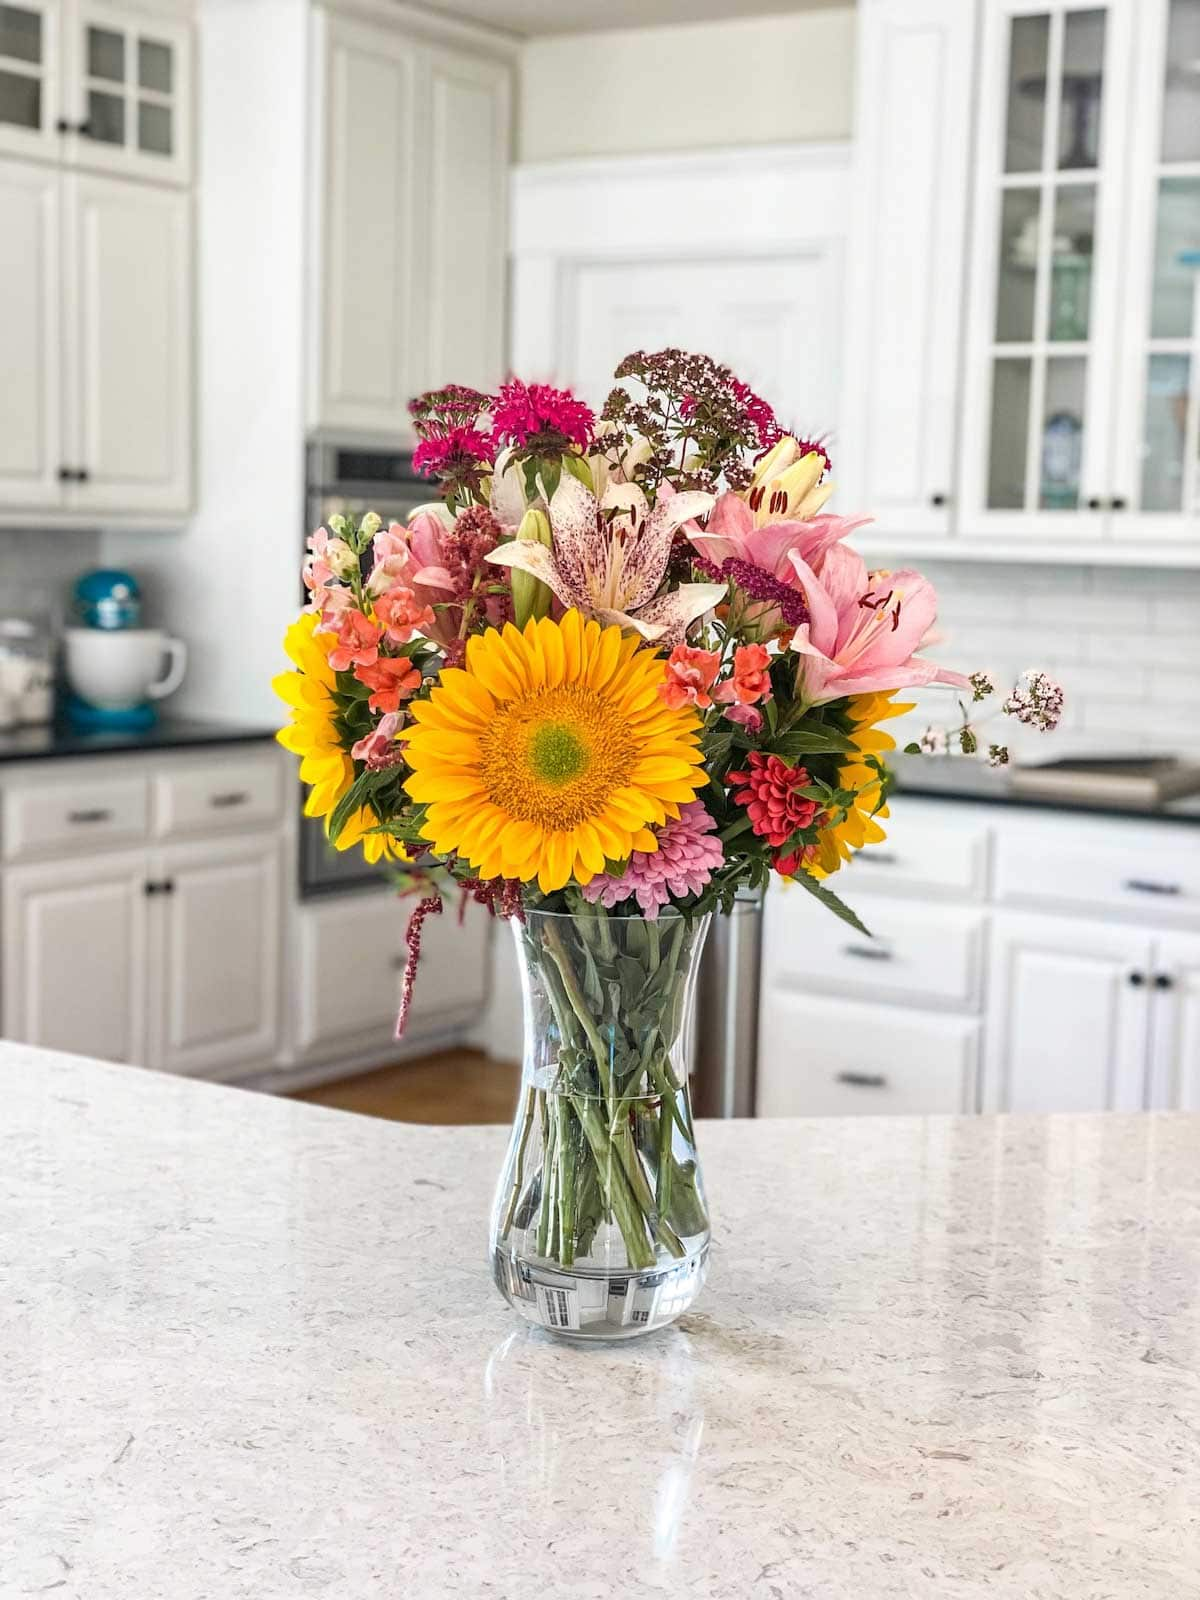 Glass vase with an array of multicolored flowers on white countertop